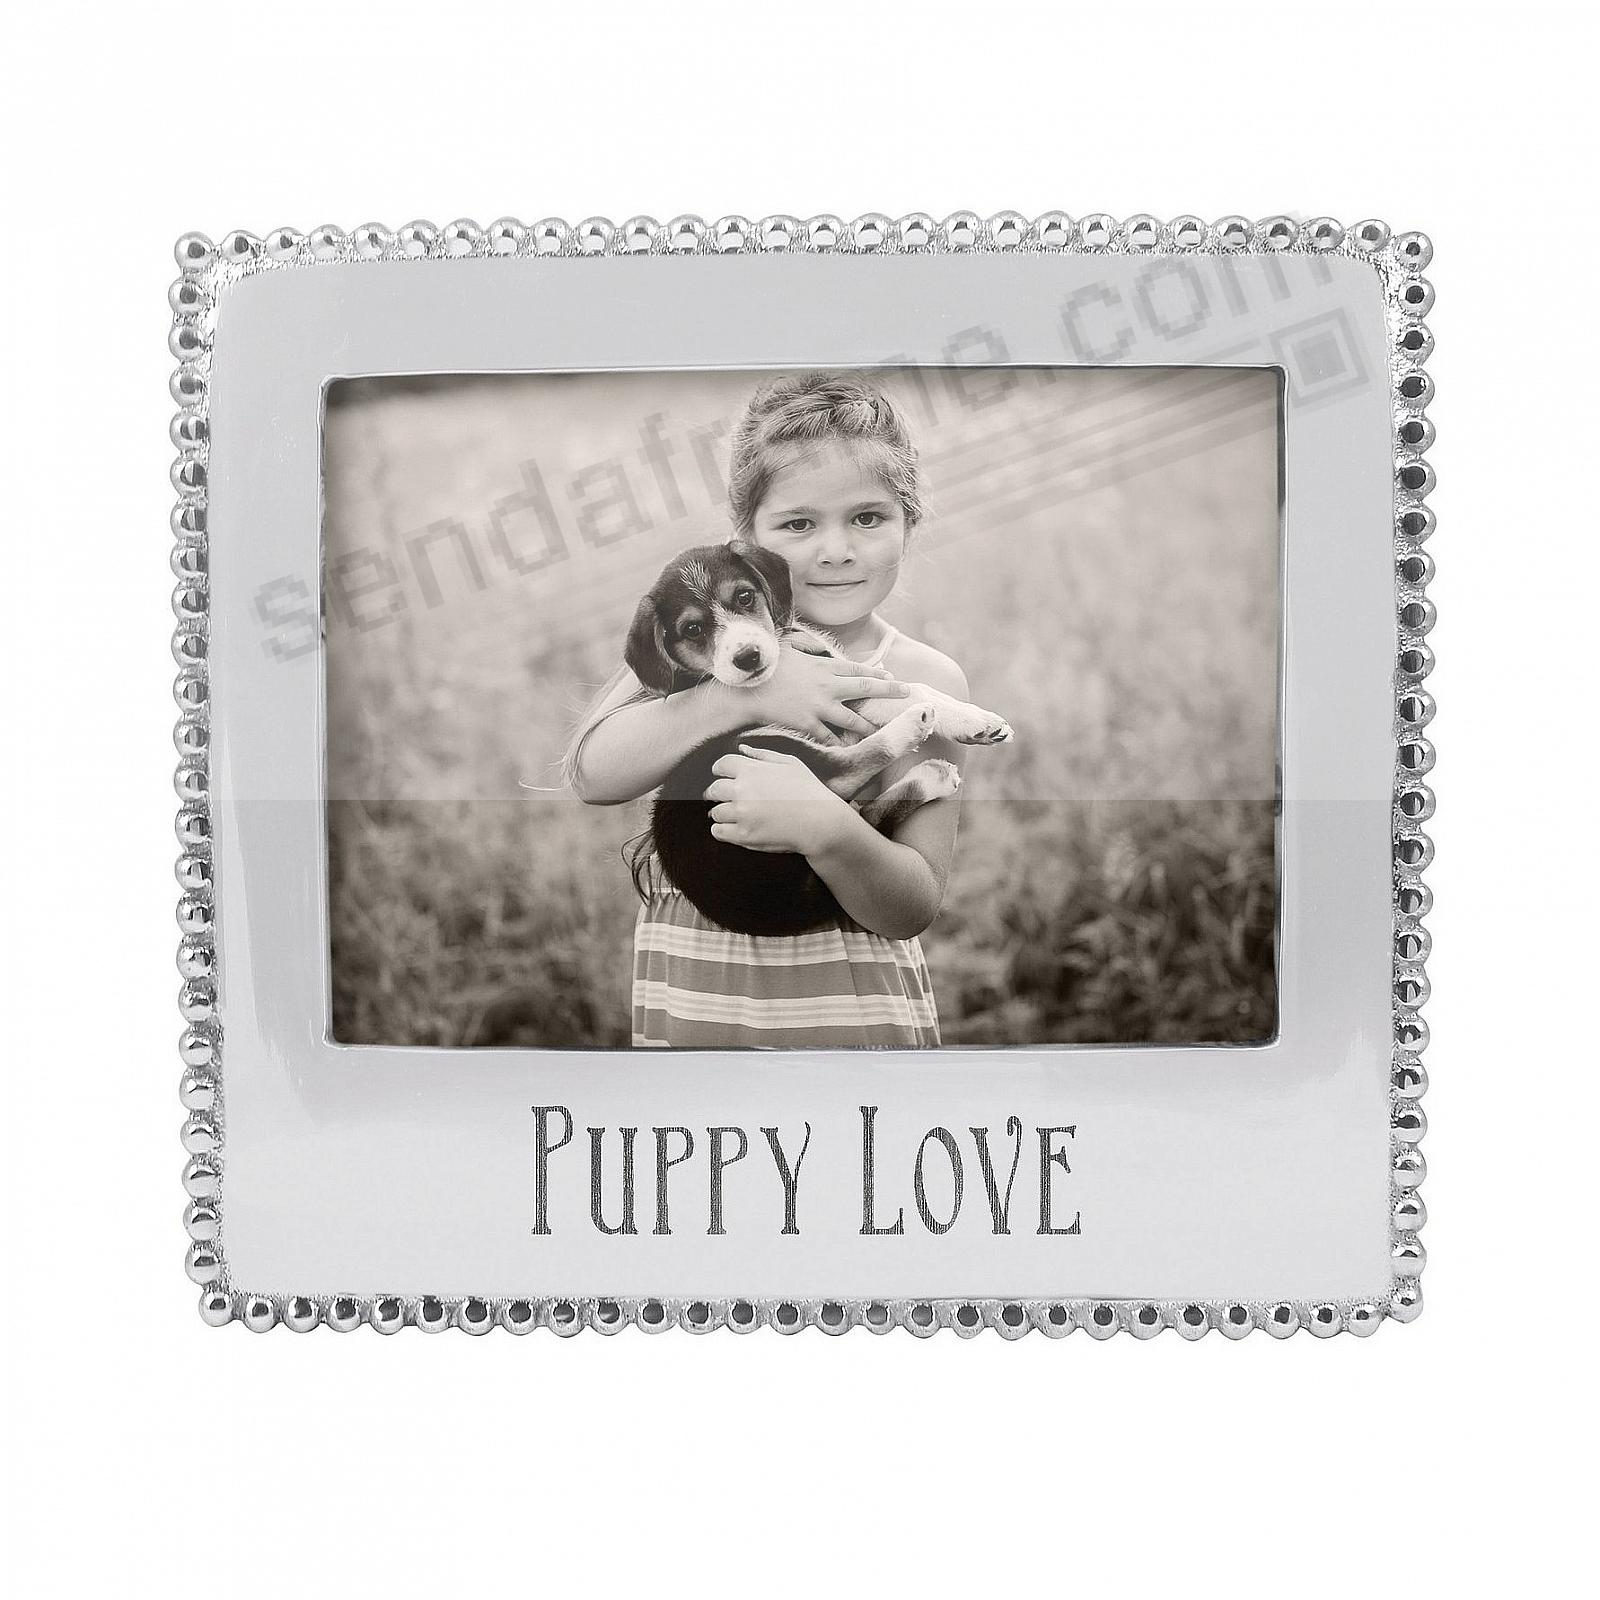 PUPPY LOVE Statement 5x7 frame crafted by Mariposa®